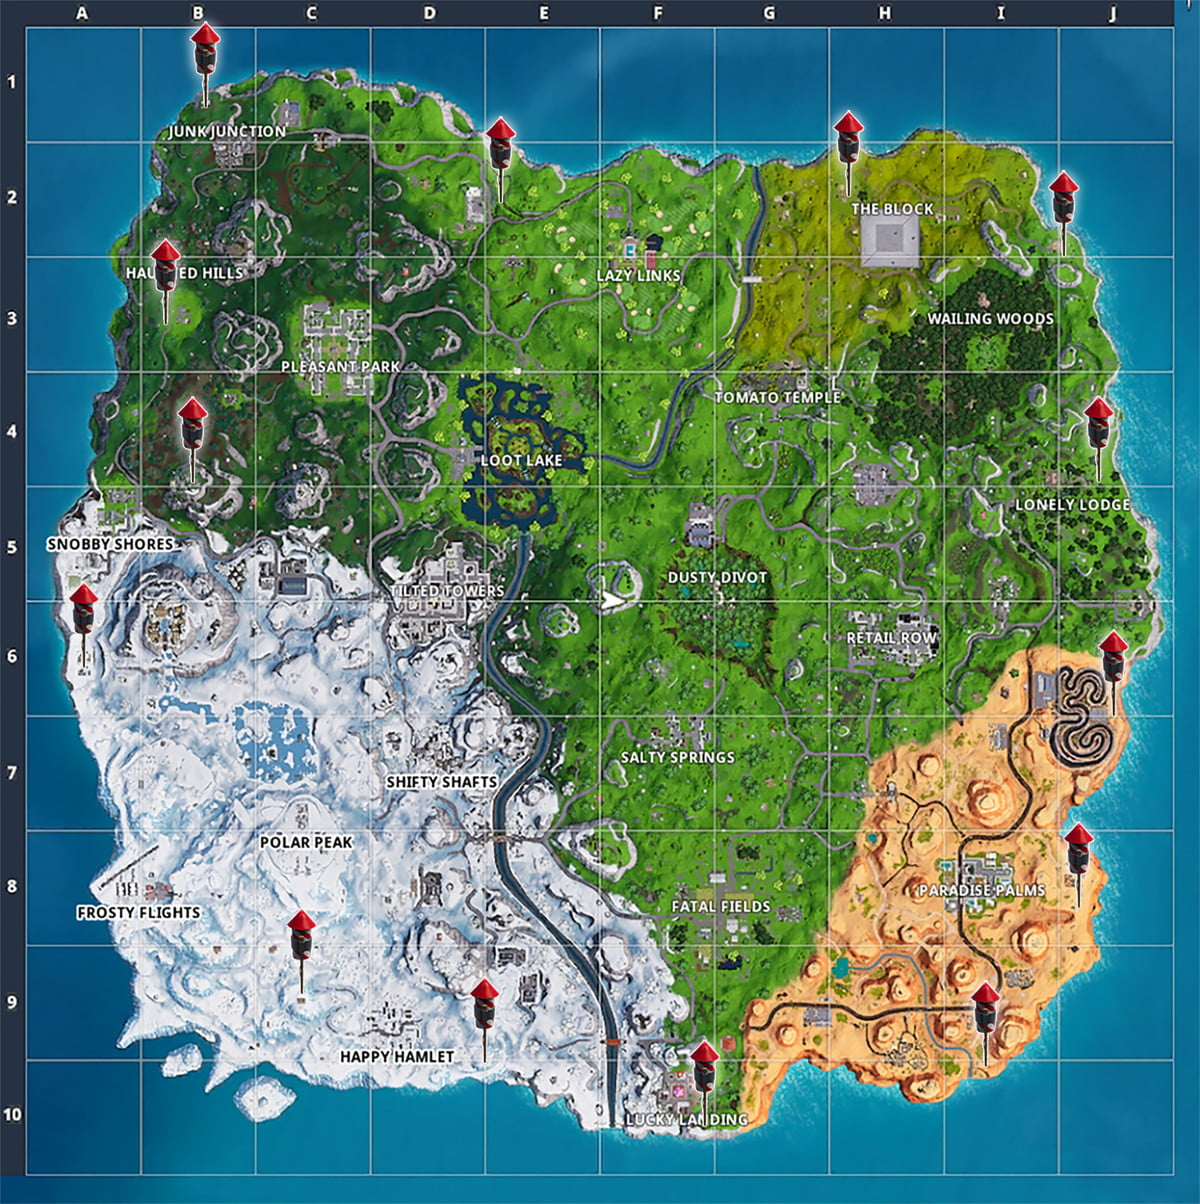 Fireworks locations on map | Fortnite Season 7 Week 4 Challenge guide: Launch fireworks at three locations